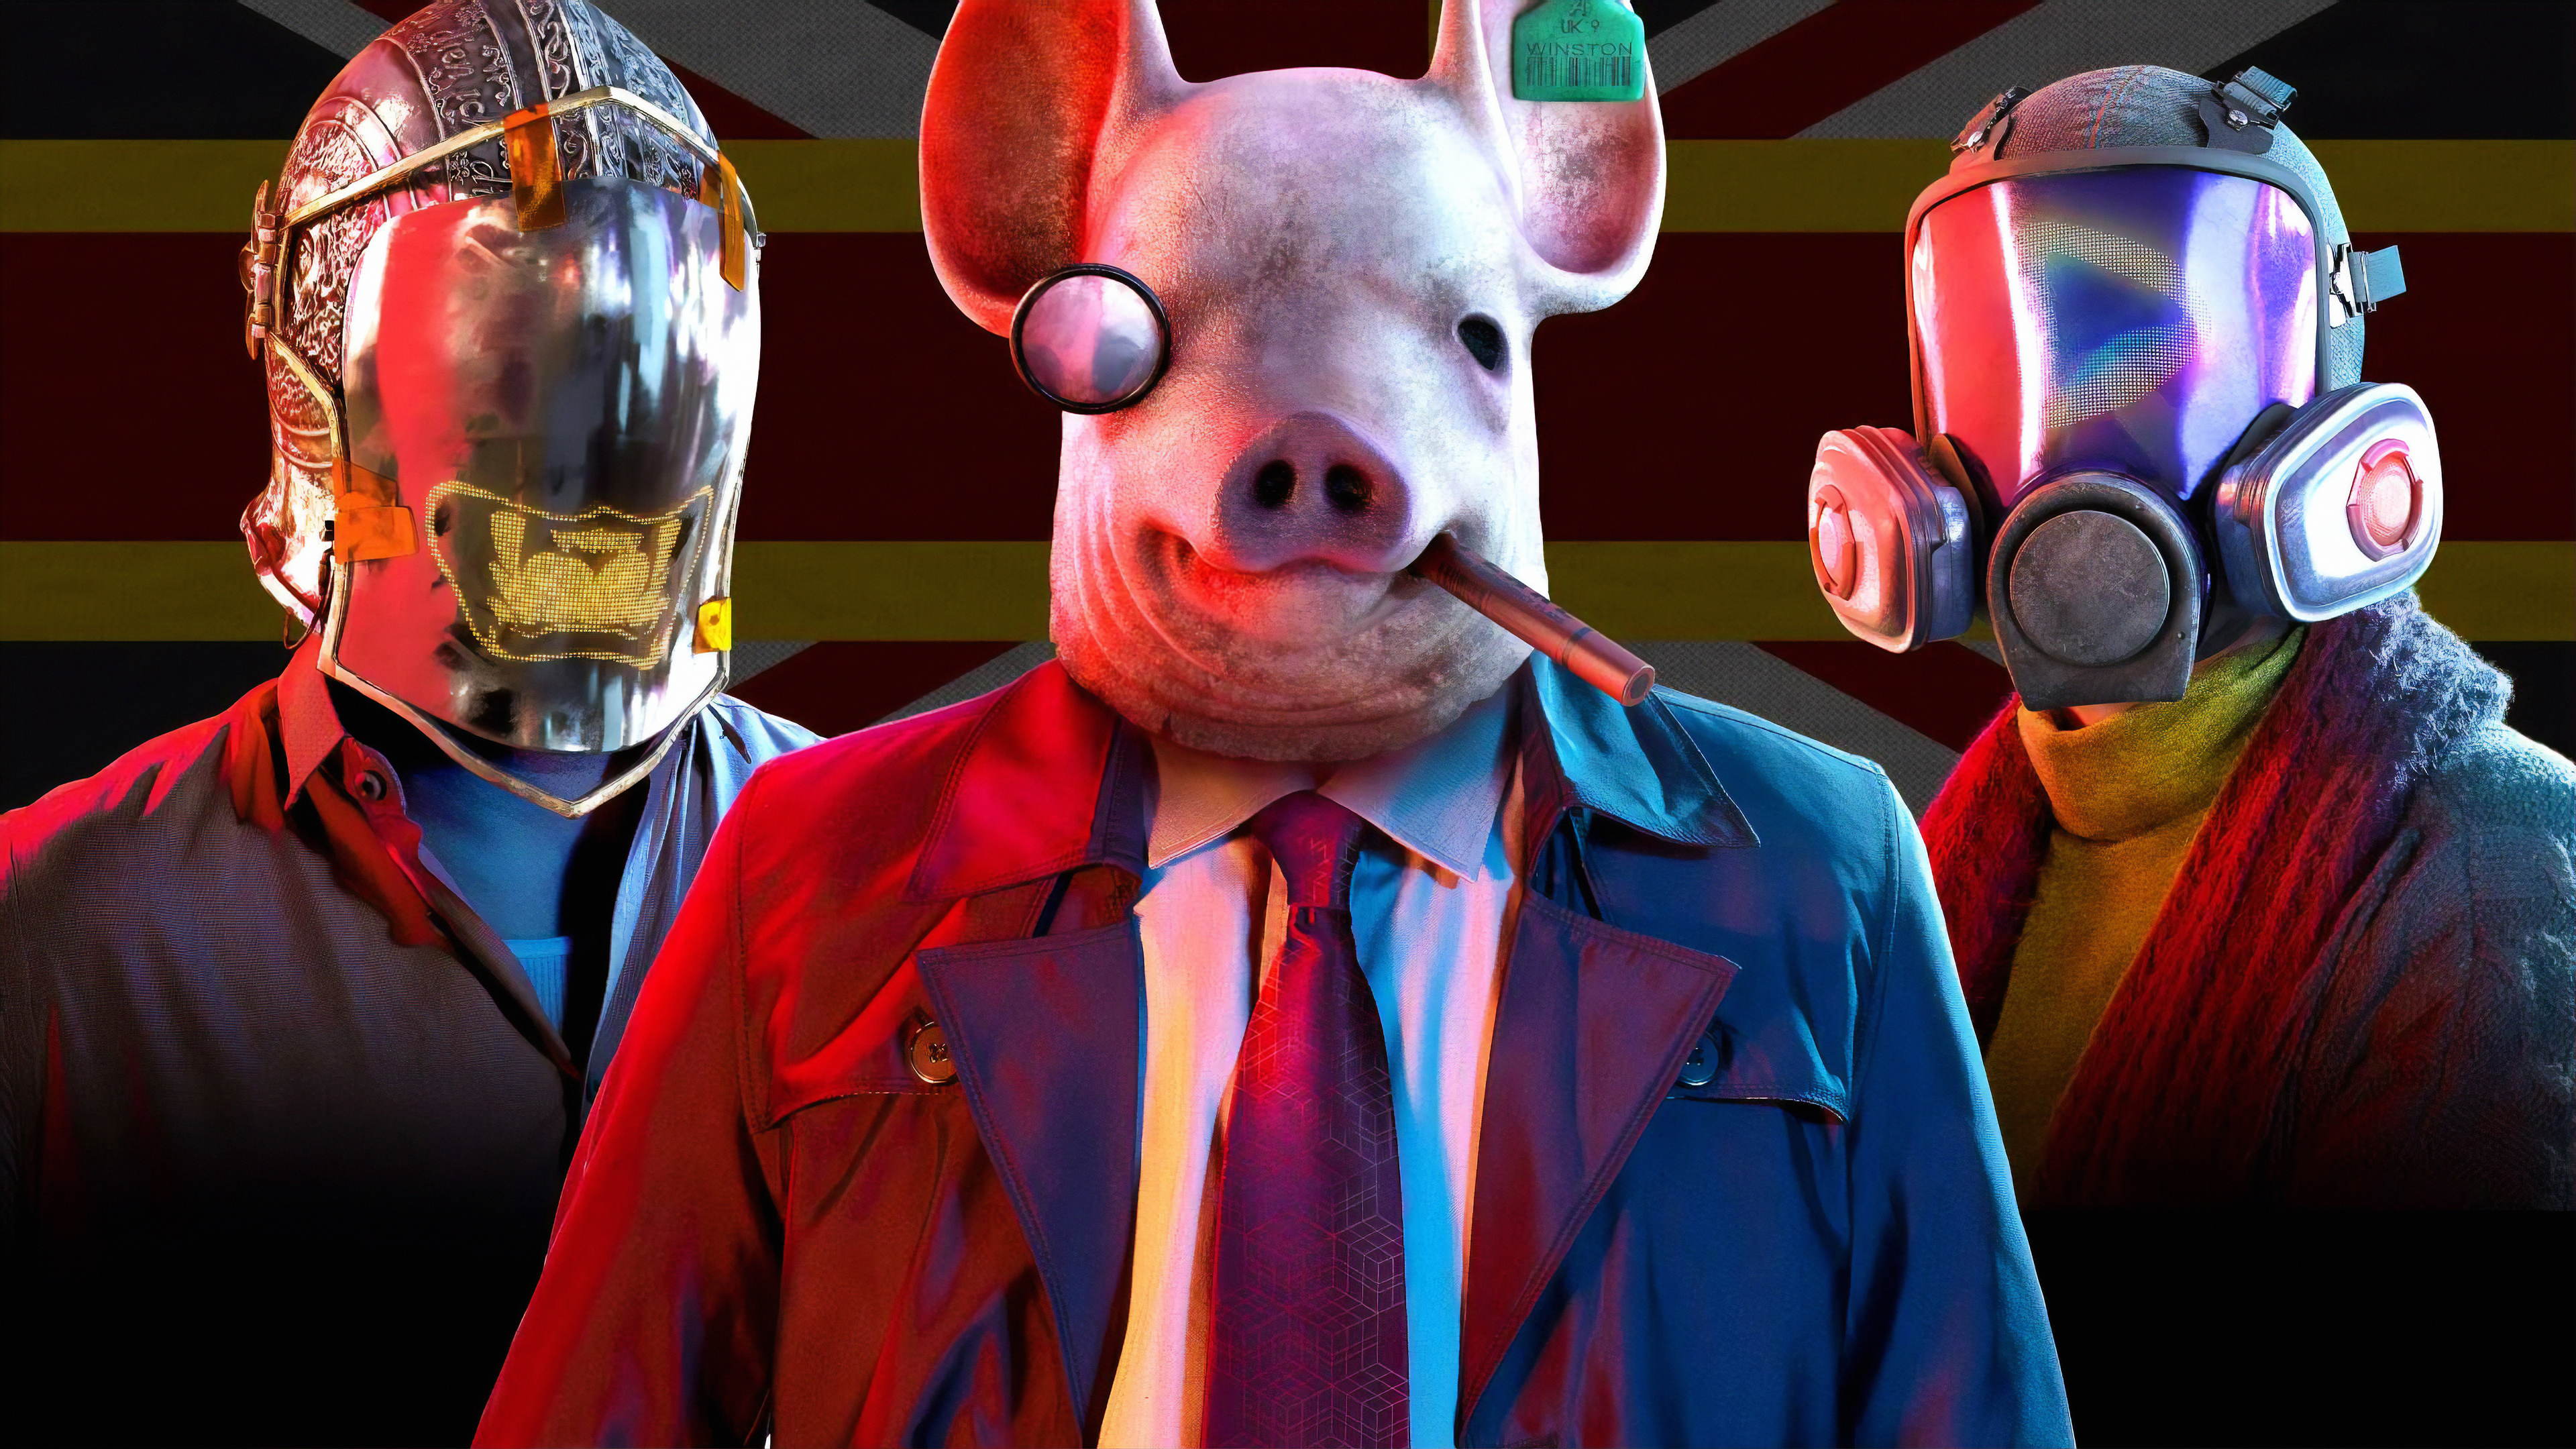 Watch Dogs Legion 4k 2019 Game, HD Games, 4k Wallpapers, Images, Backgrounds, Photos and Pictures